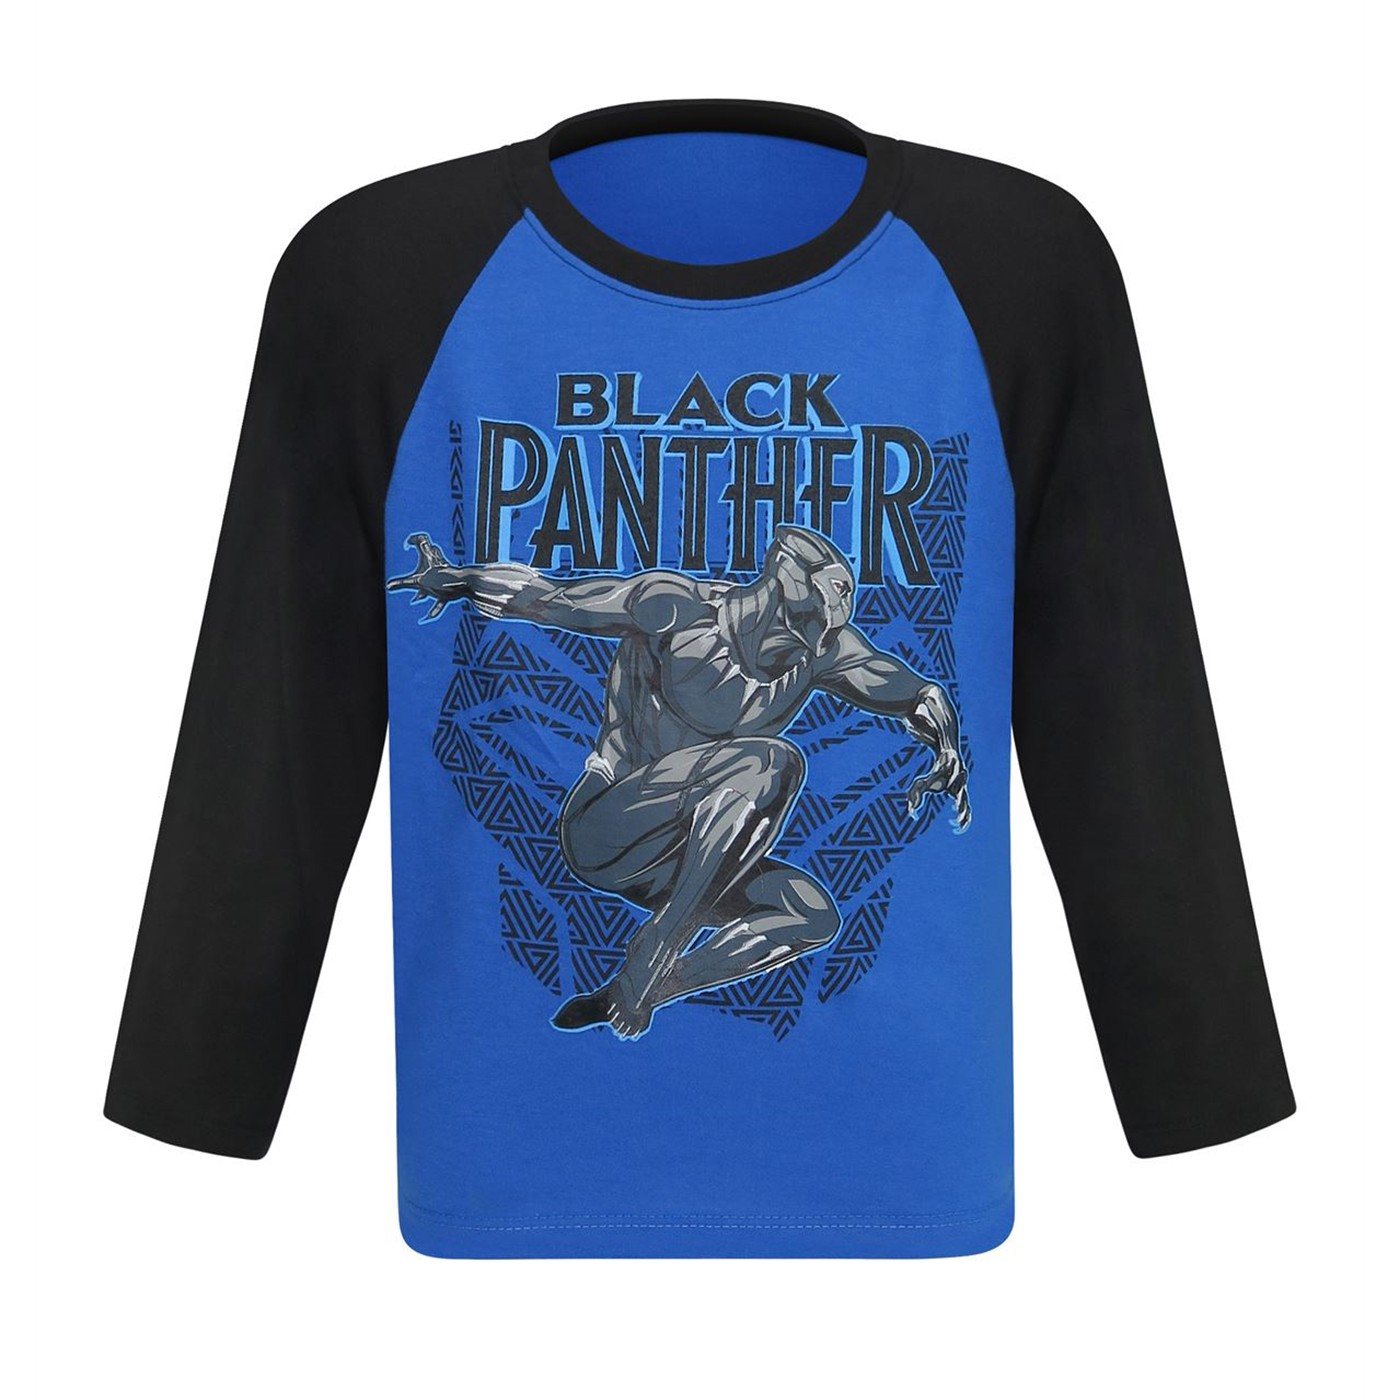 Black Panther Leap Kids Baseball T-Shirt